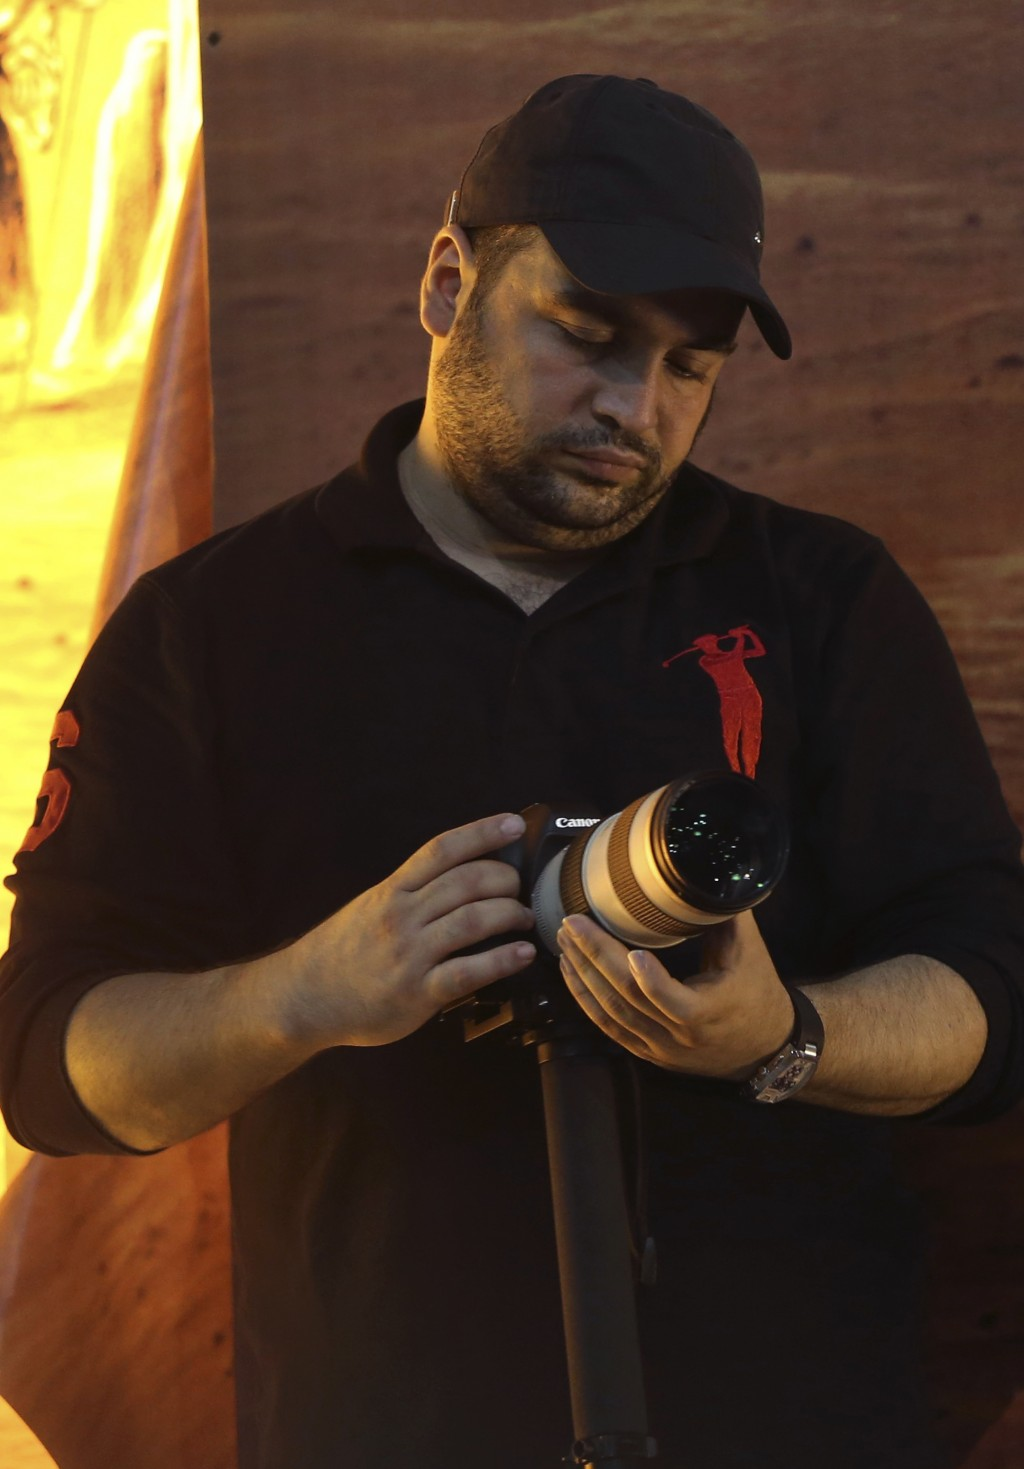 In this Nov. 3, 2014 photo, Jawad Nasrallah, the second eldest son of of Hezbollah leader Sheikh Hassan Nasrallah, adjusts his camera during a speech ...